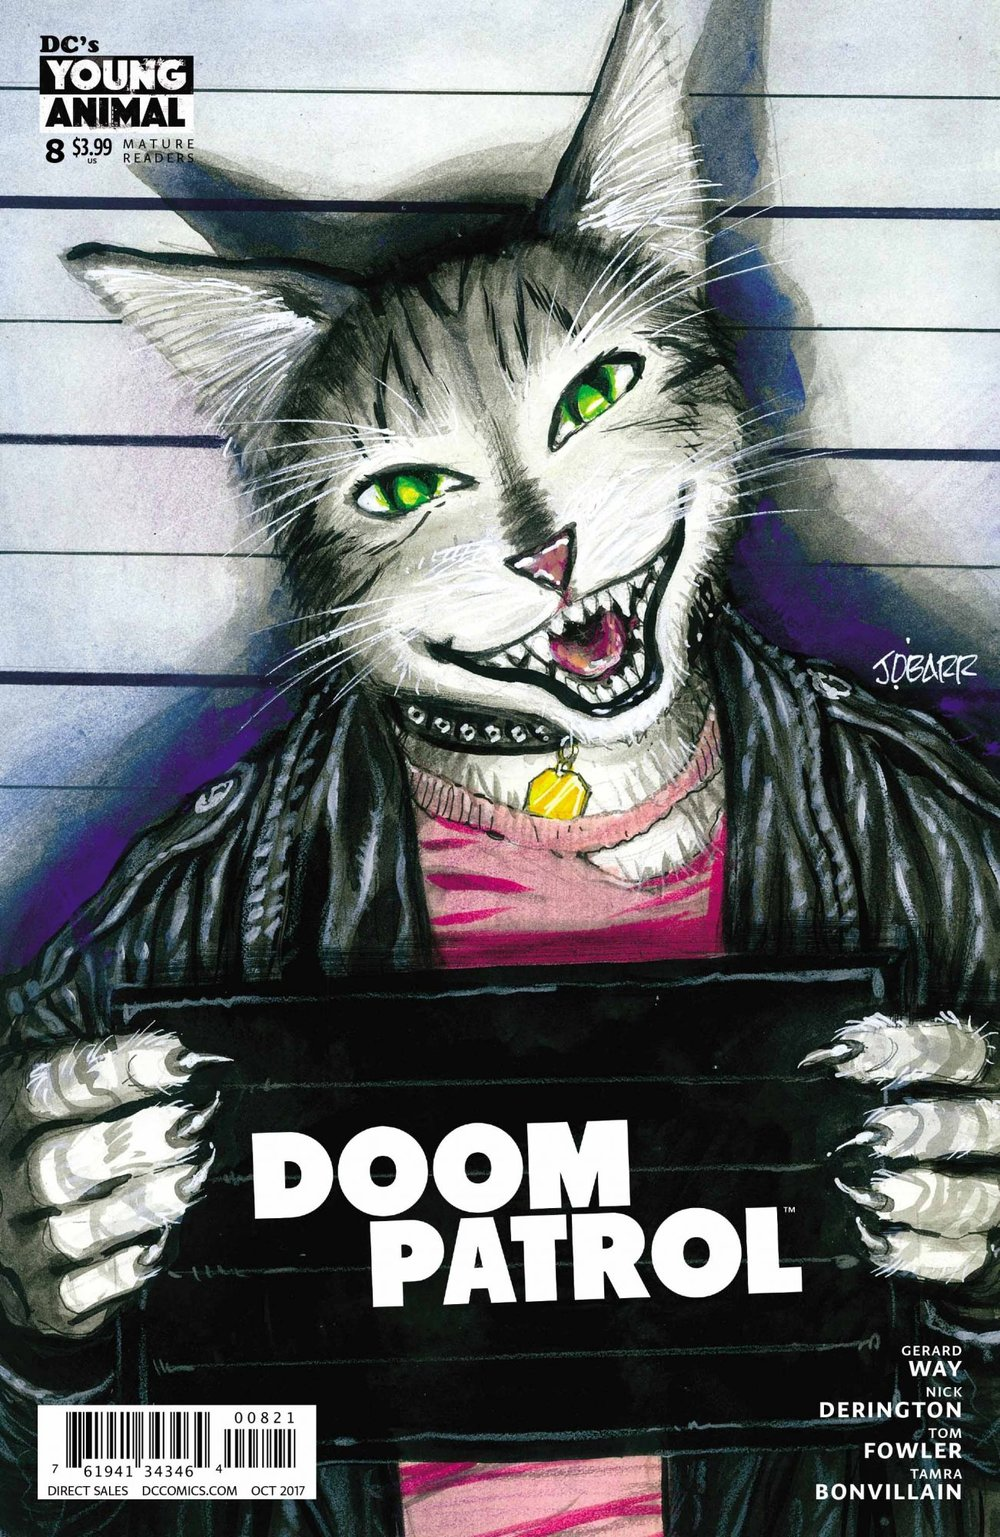 Doom Patrol (2016) #8  variant cover by  James O'Barr .